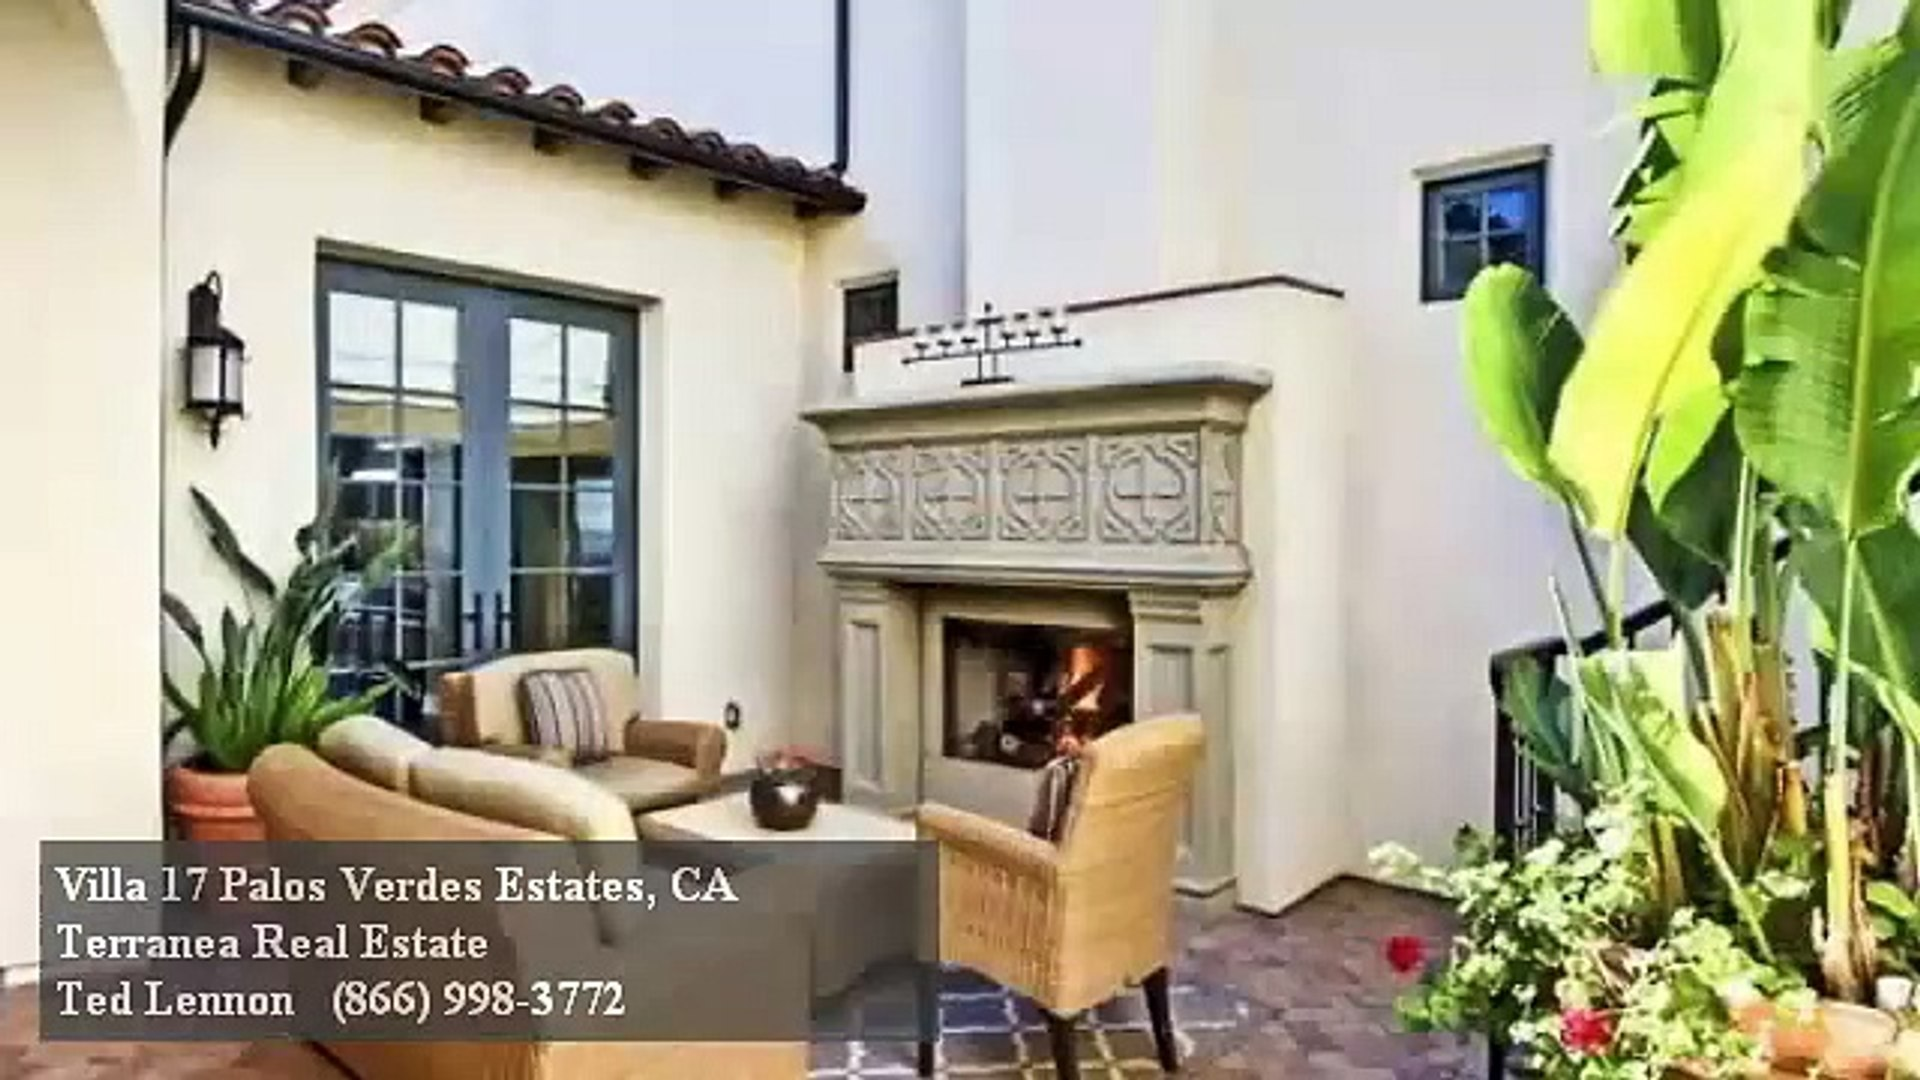 California Home For Sale - Villa 17   Palos Verdes Estates, California